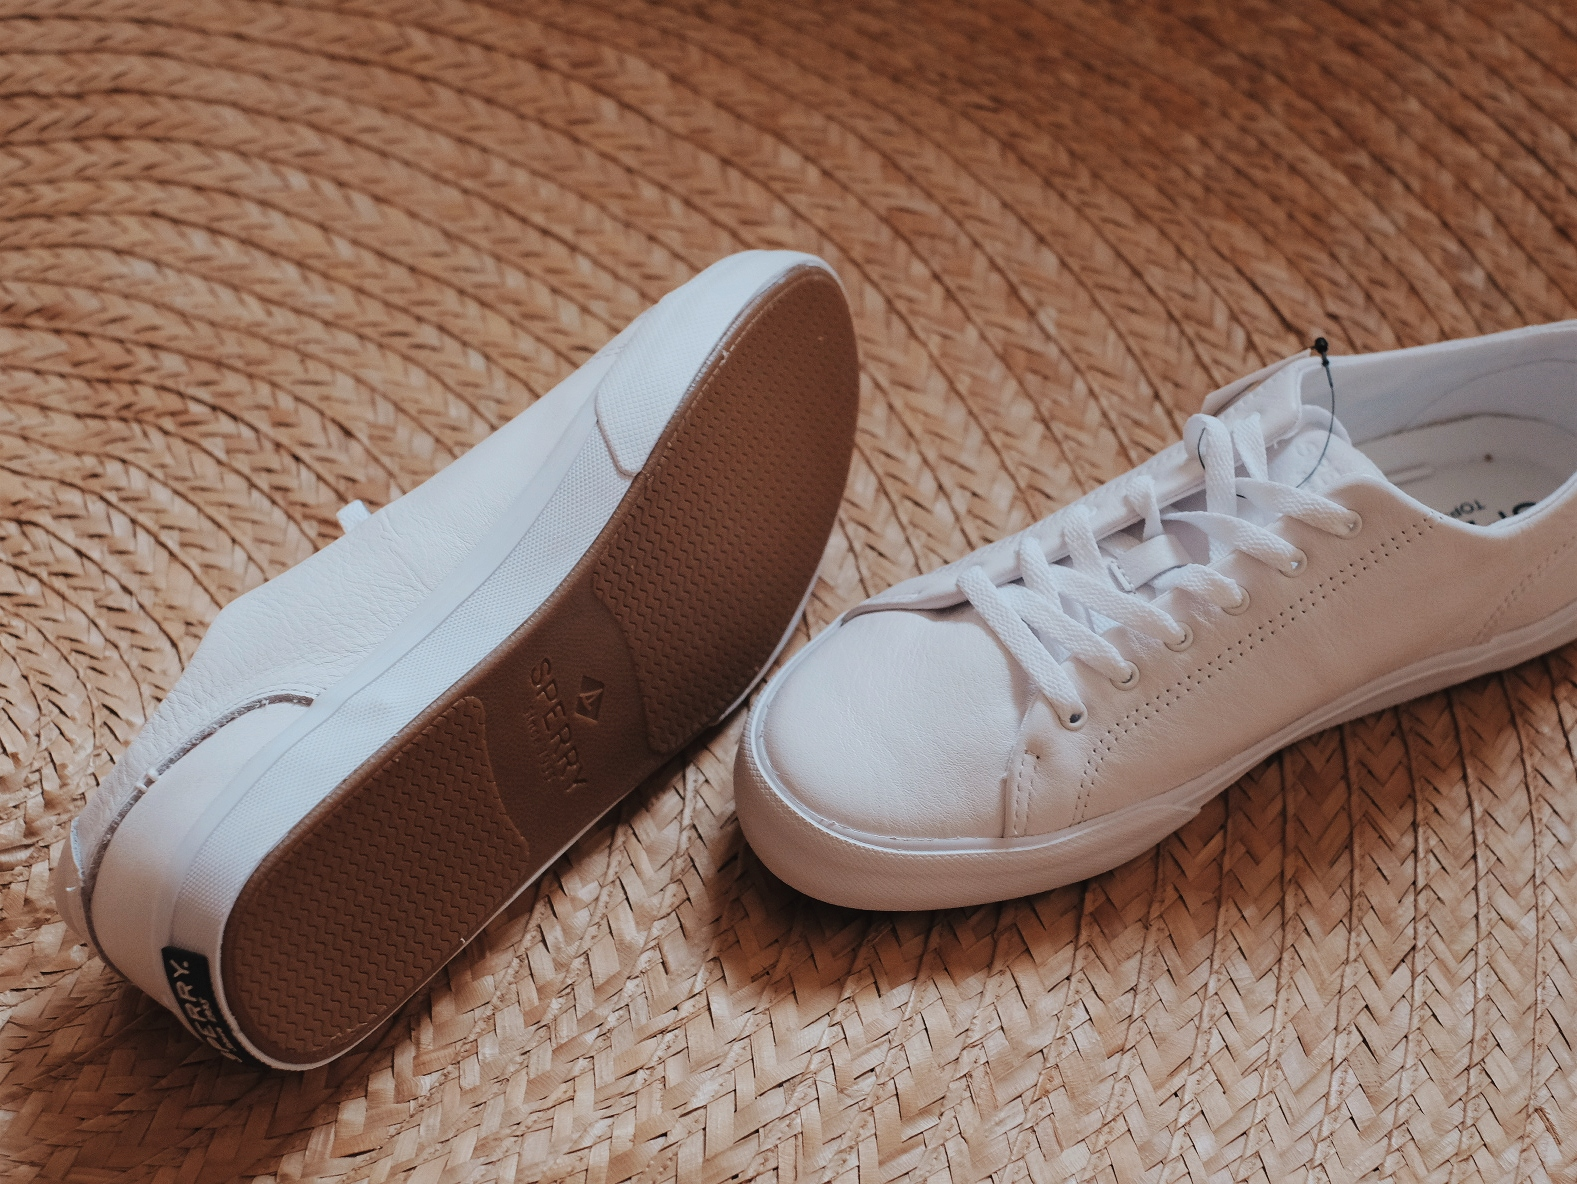 Sperry Classic White Leather Sneakers Outfit